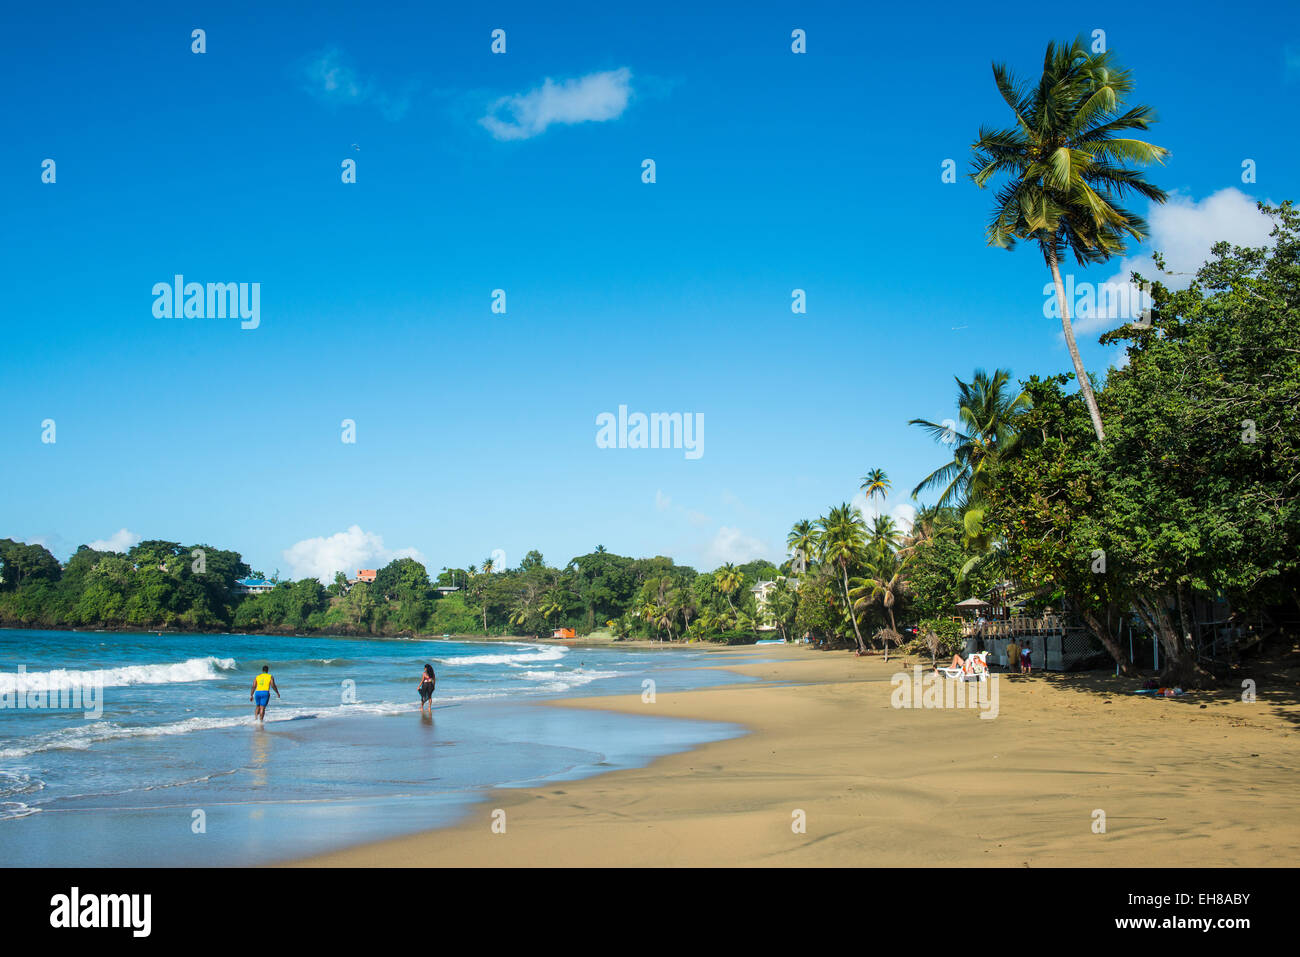 The beach of Stonehaven Bay, Tobago, Trinidad and Tobago, West Indies, Caribbean, Central America - Stock Image